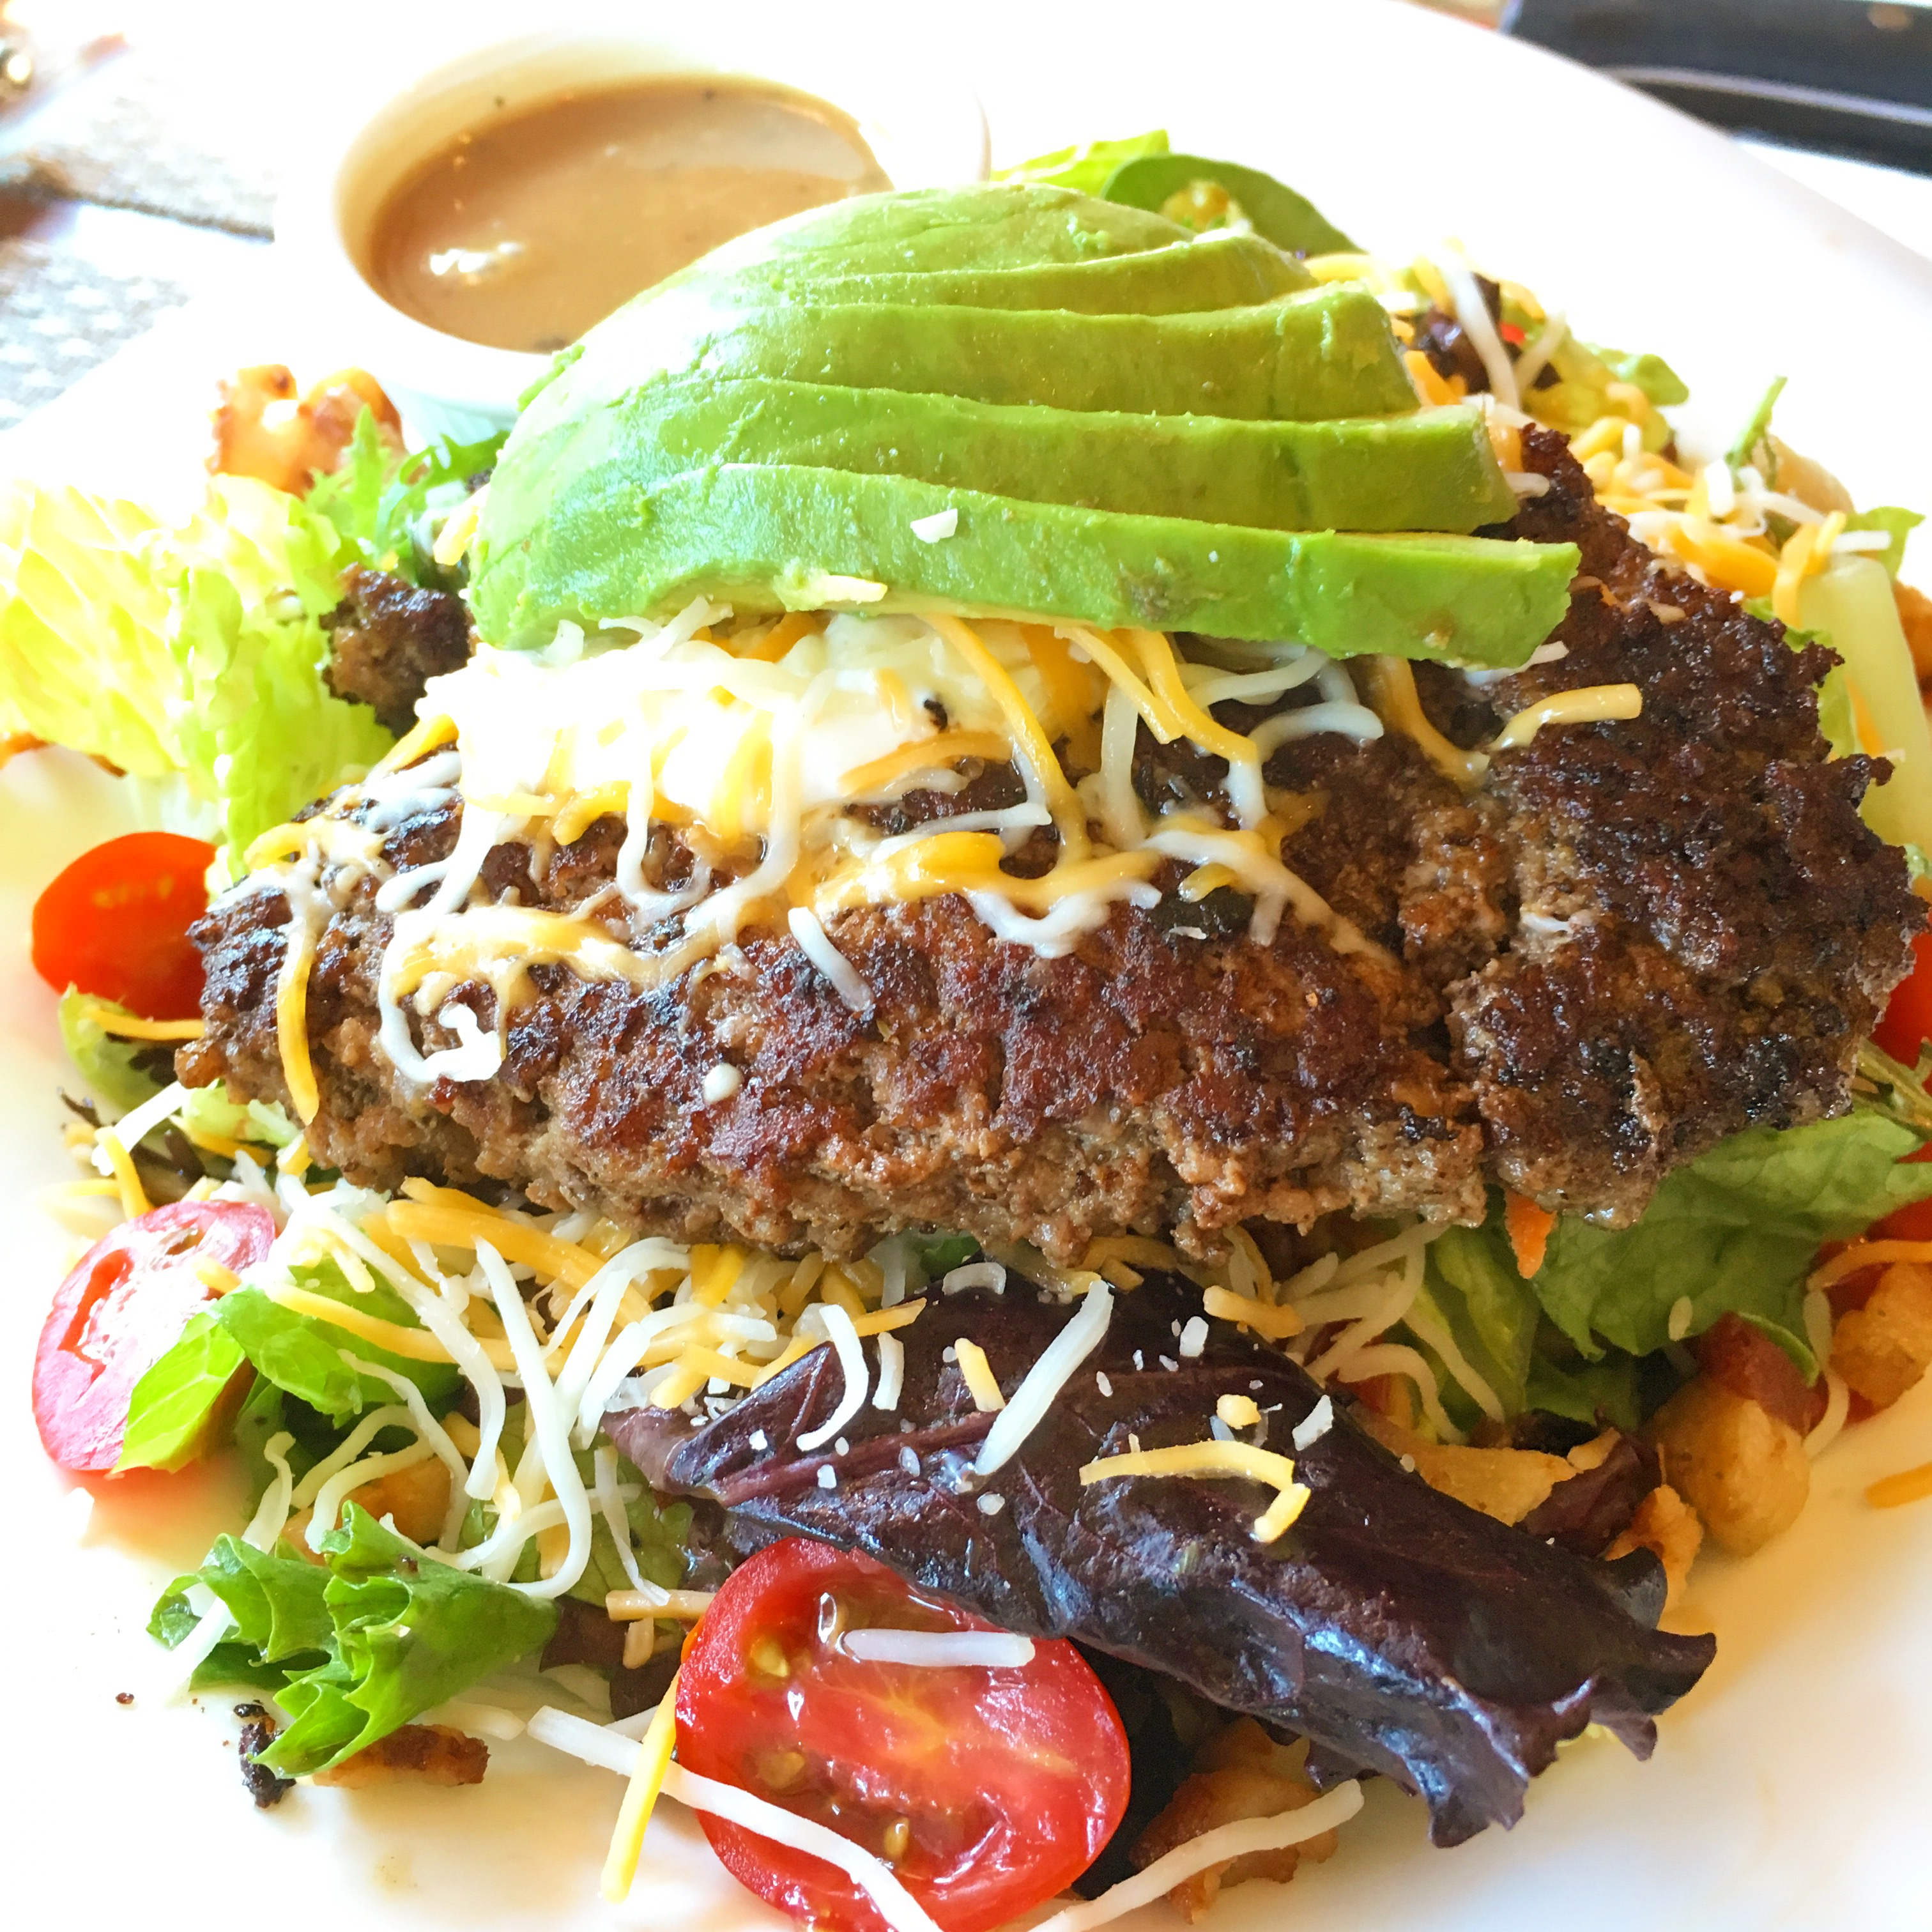 Napa Valley Burger salad